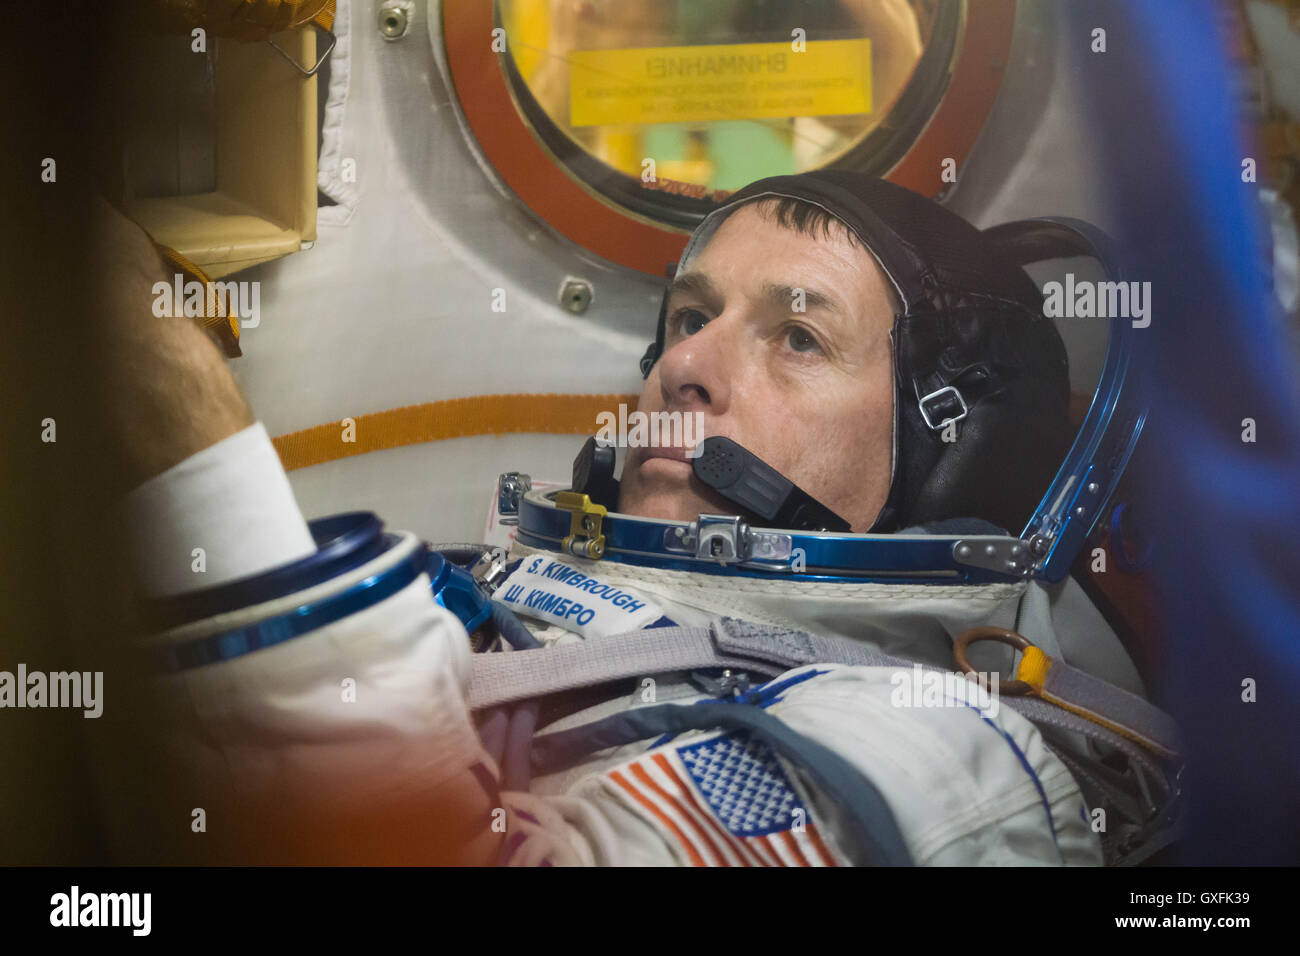 International Space Station Expedition 49 crew member NASA astronaut Shane Kimbrough conducts procedures inside - Stock Image